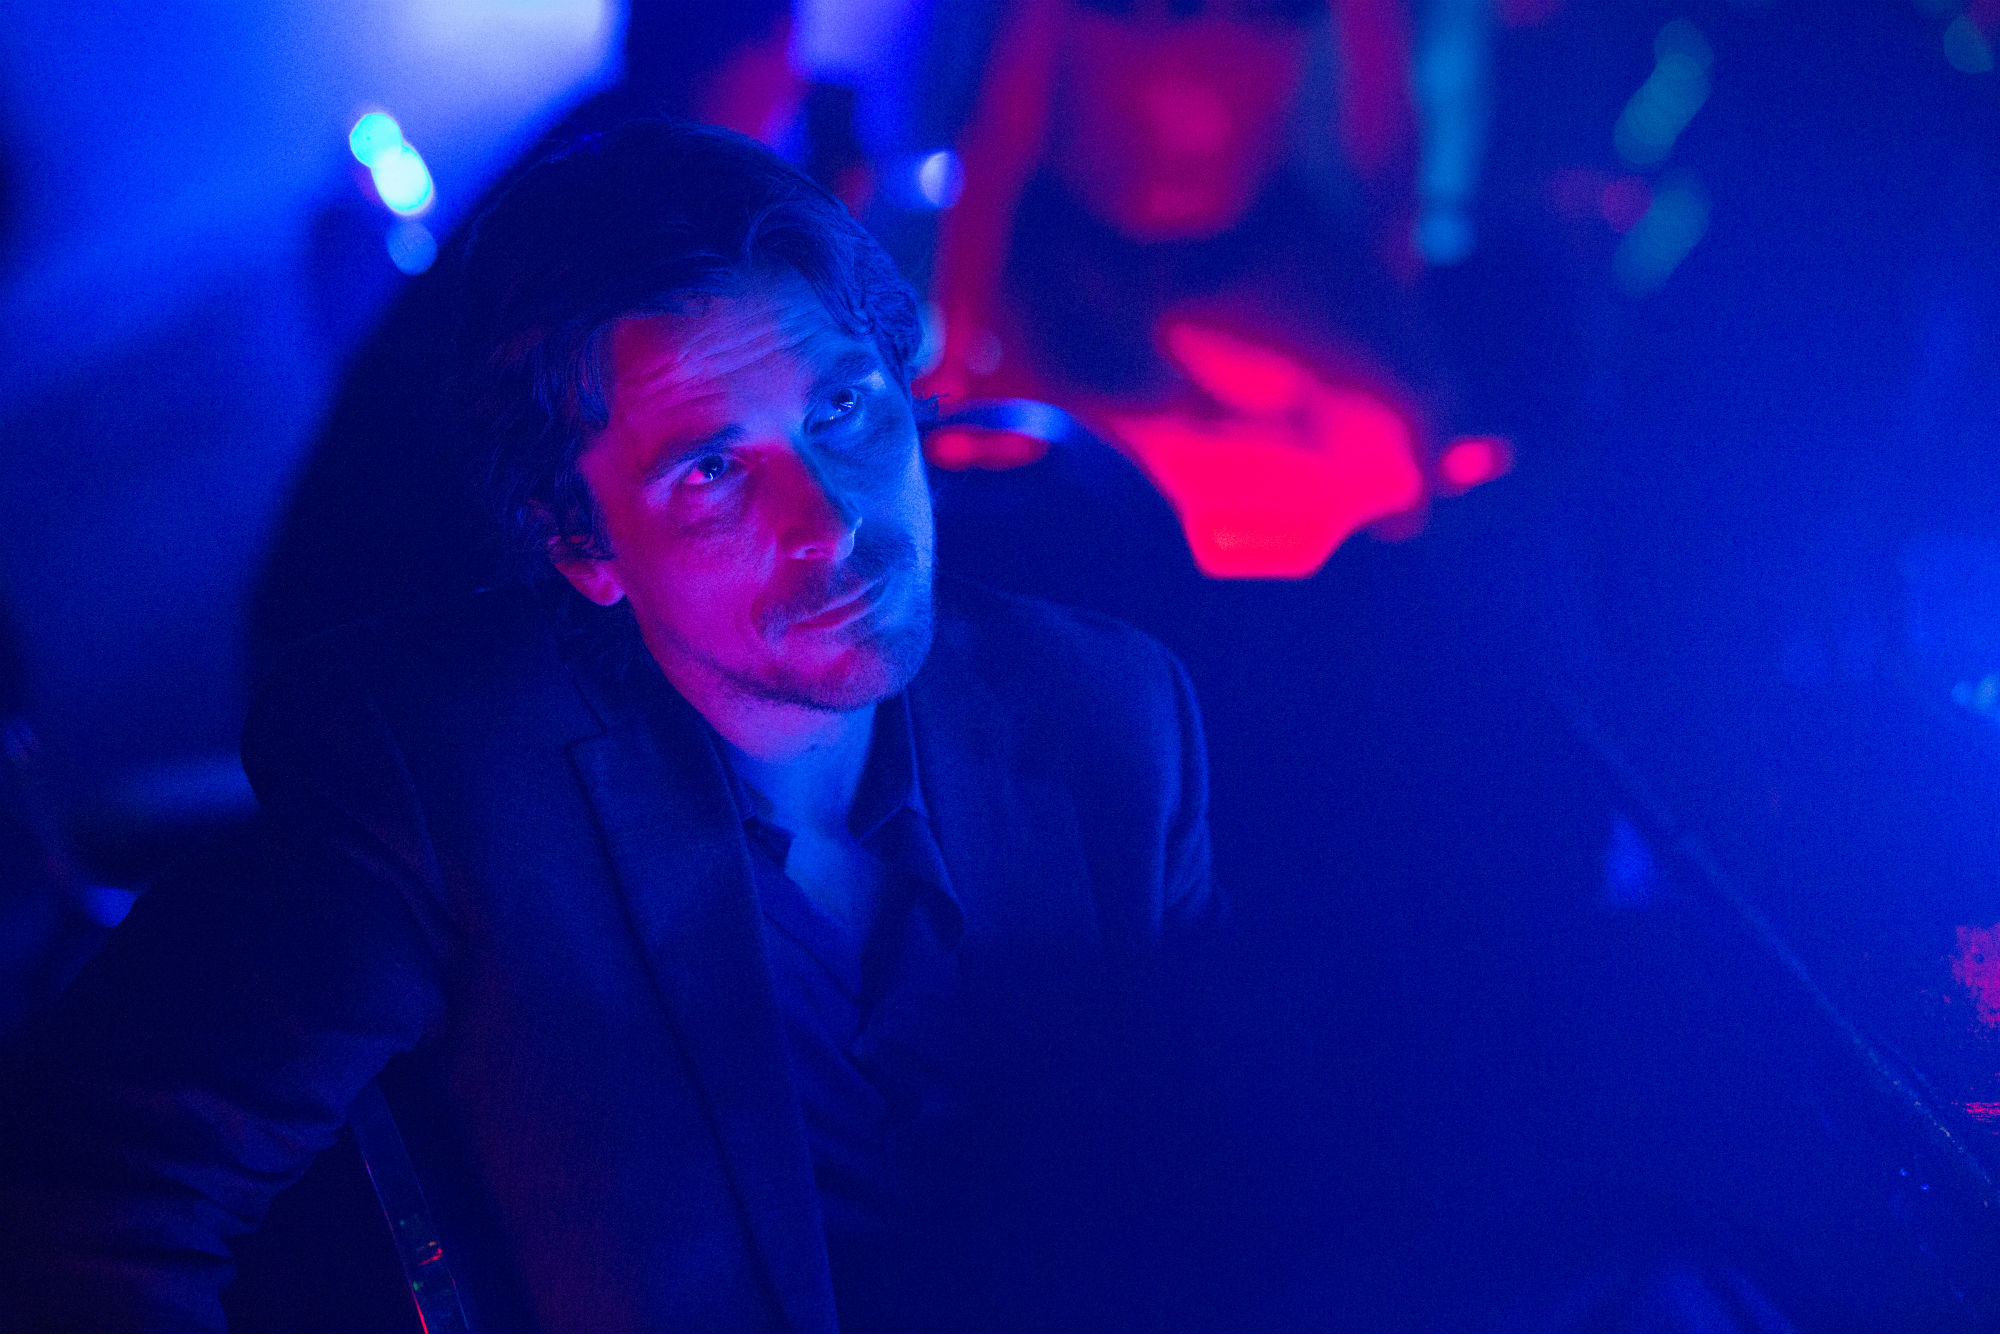 knight of cups christian bale neon colour